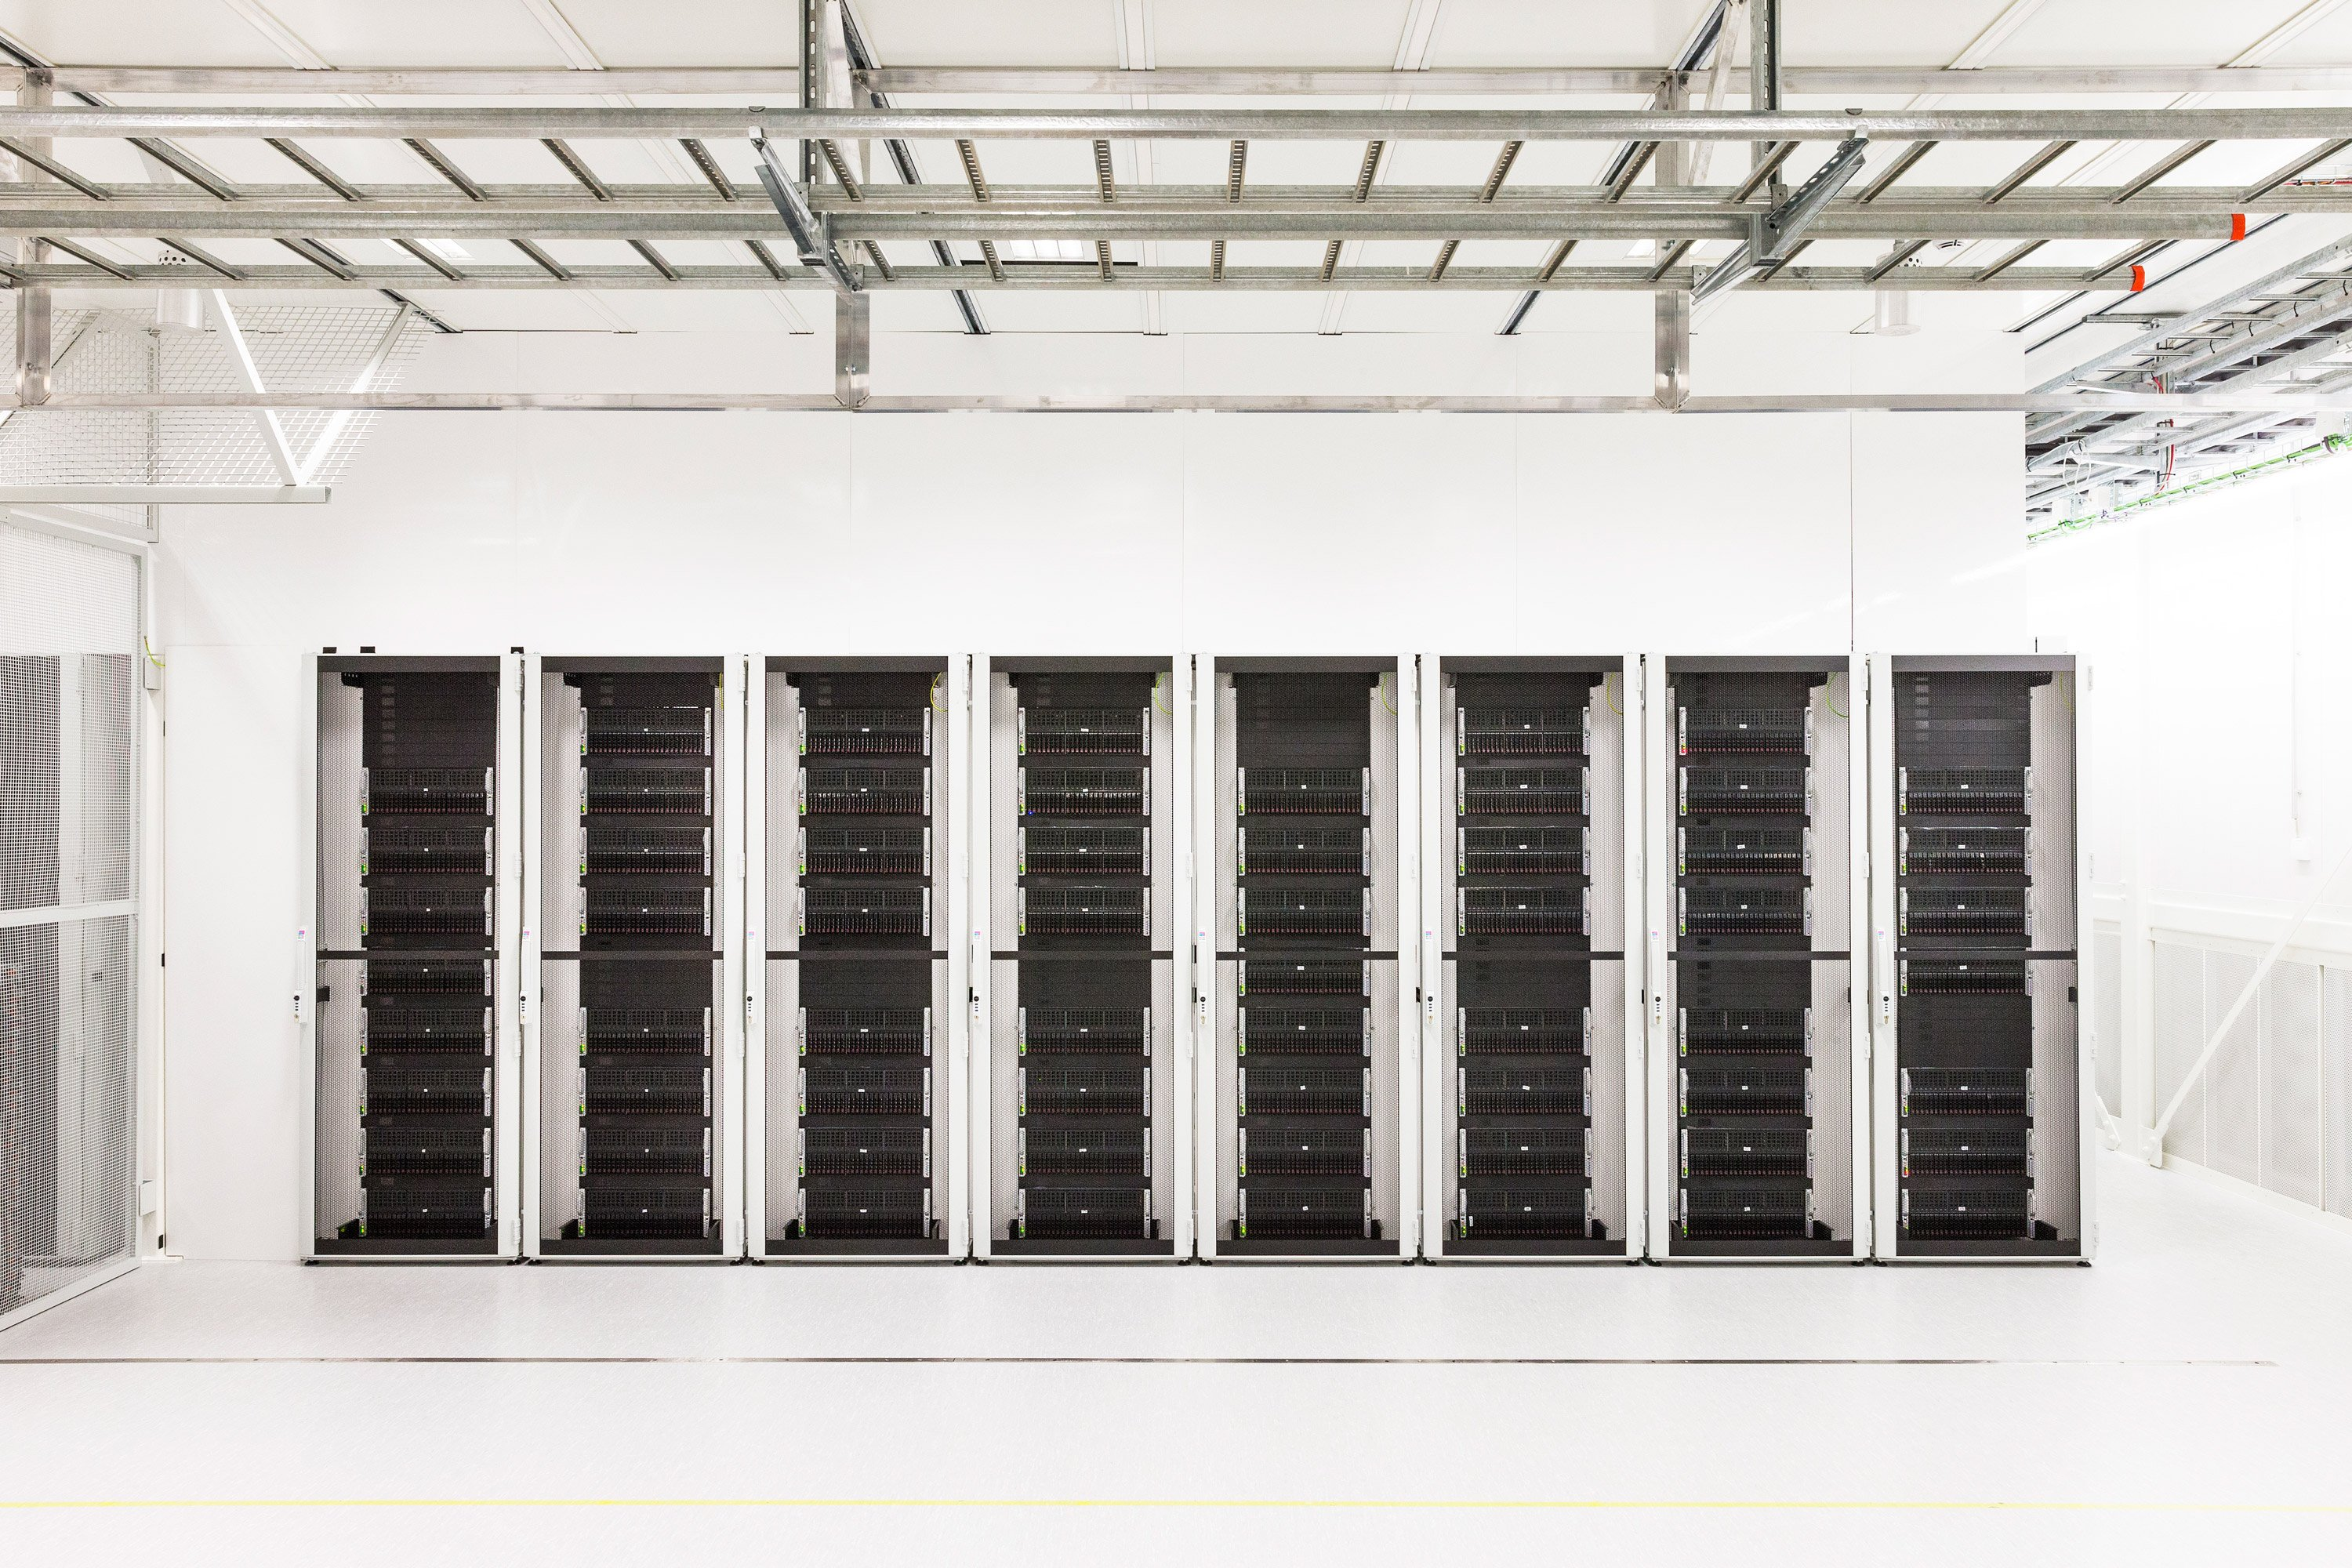 Iceland's data centers are booming—here's why that's a problem